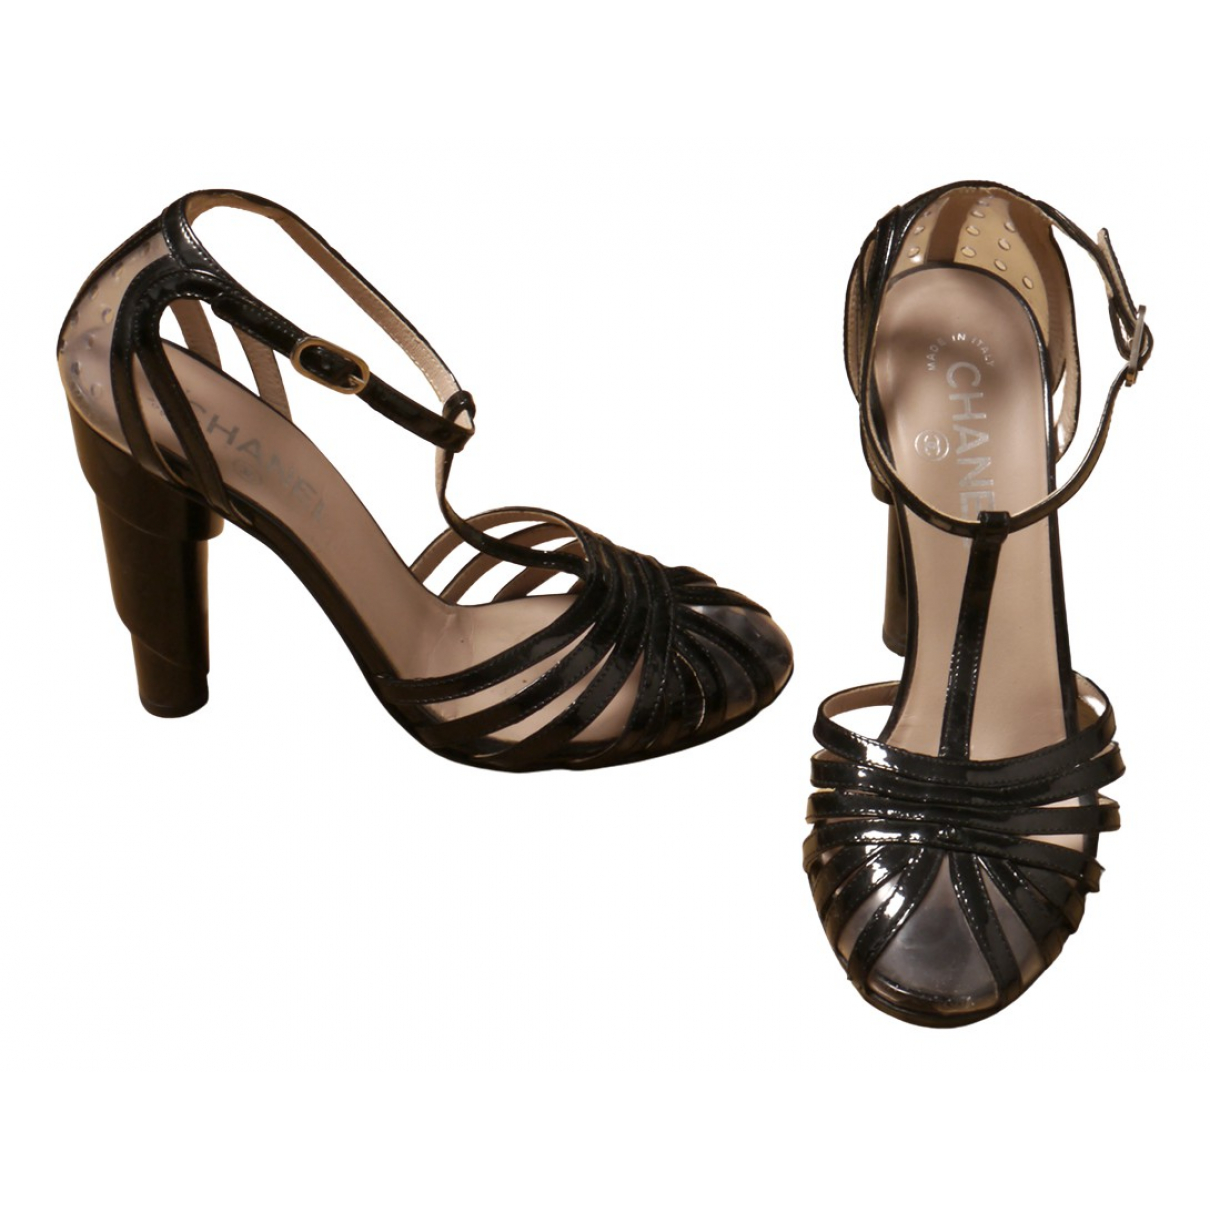 Chanel N Black Patent leather Heels for Women 37.5 EU